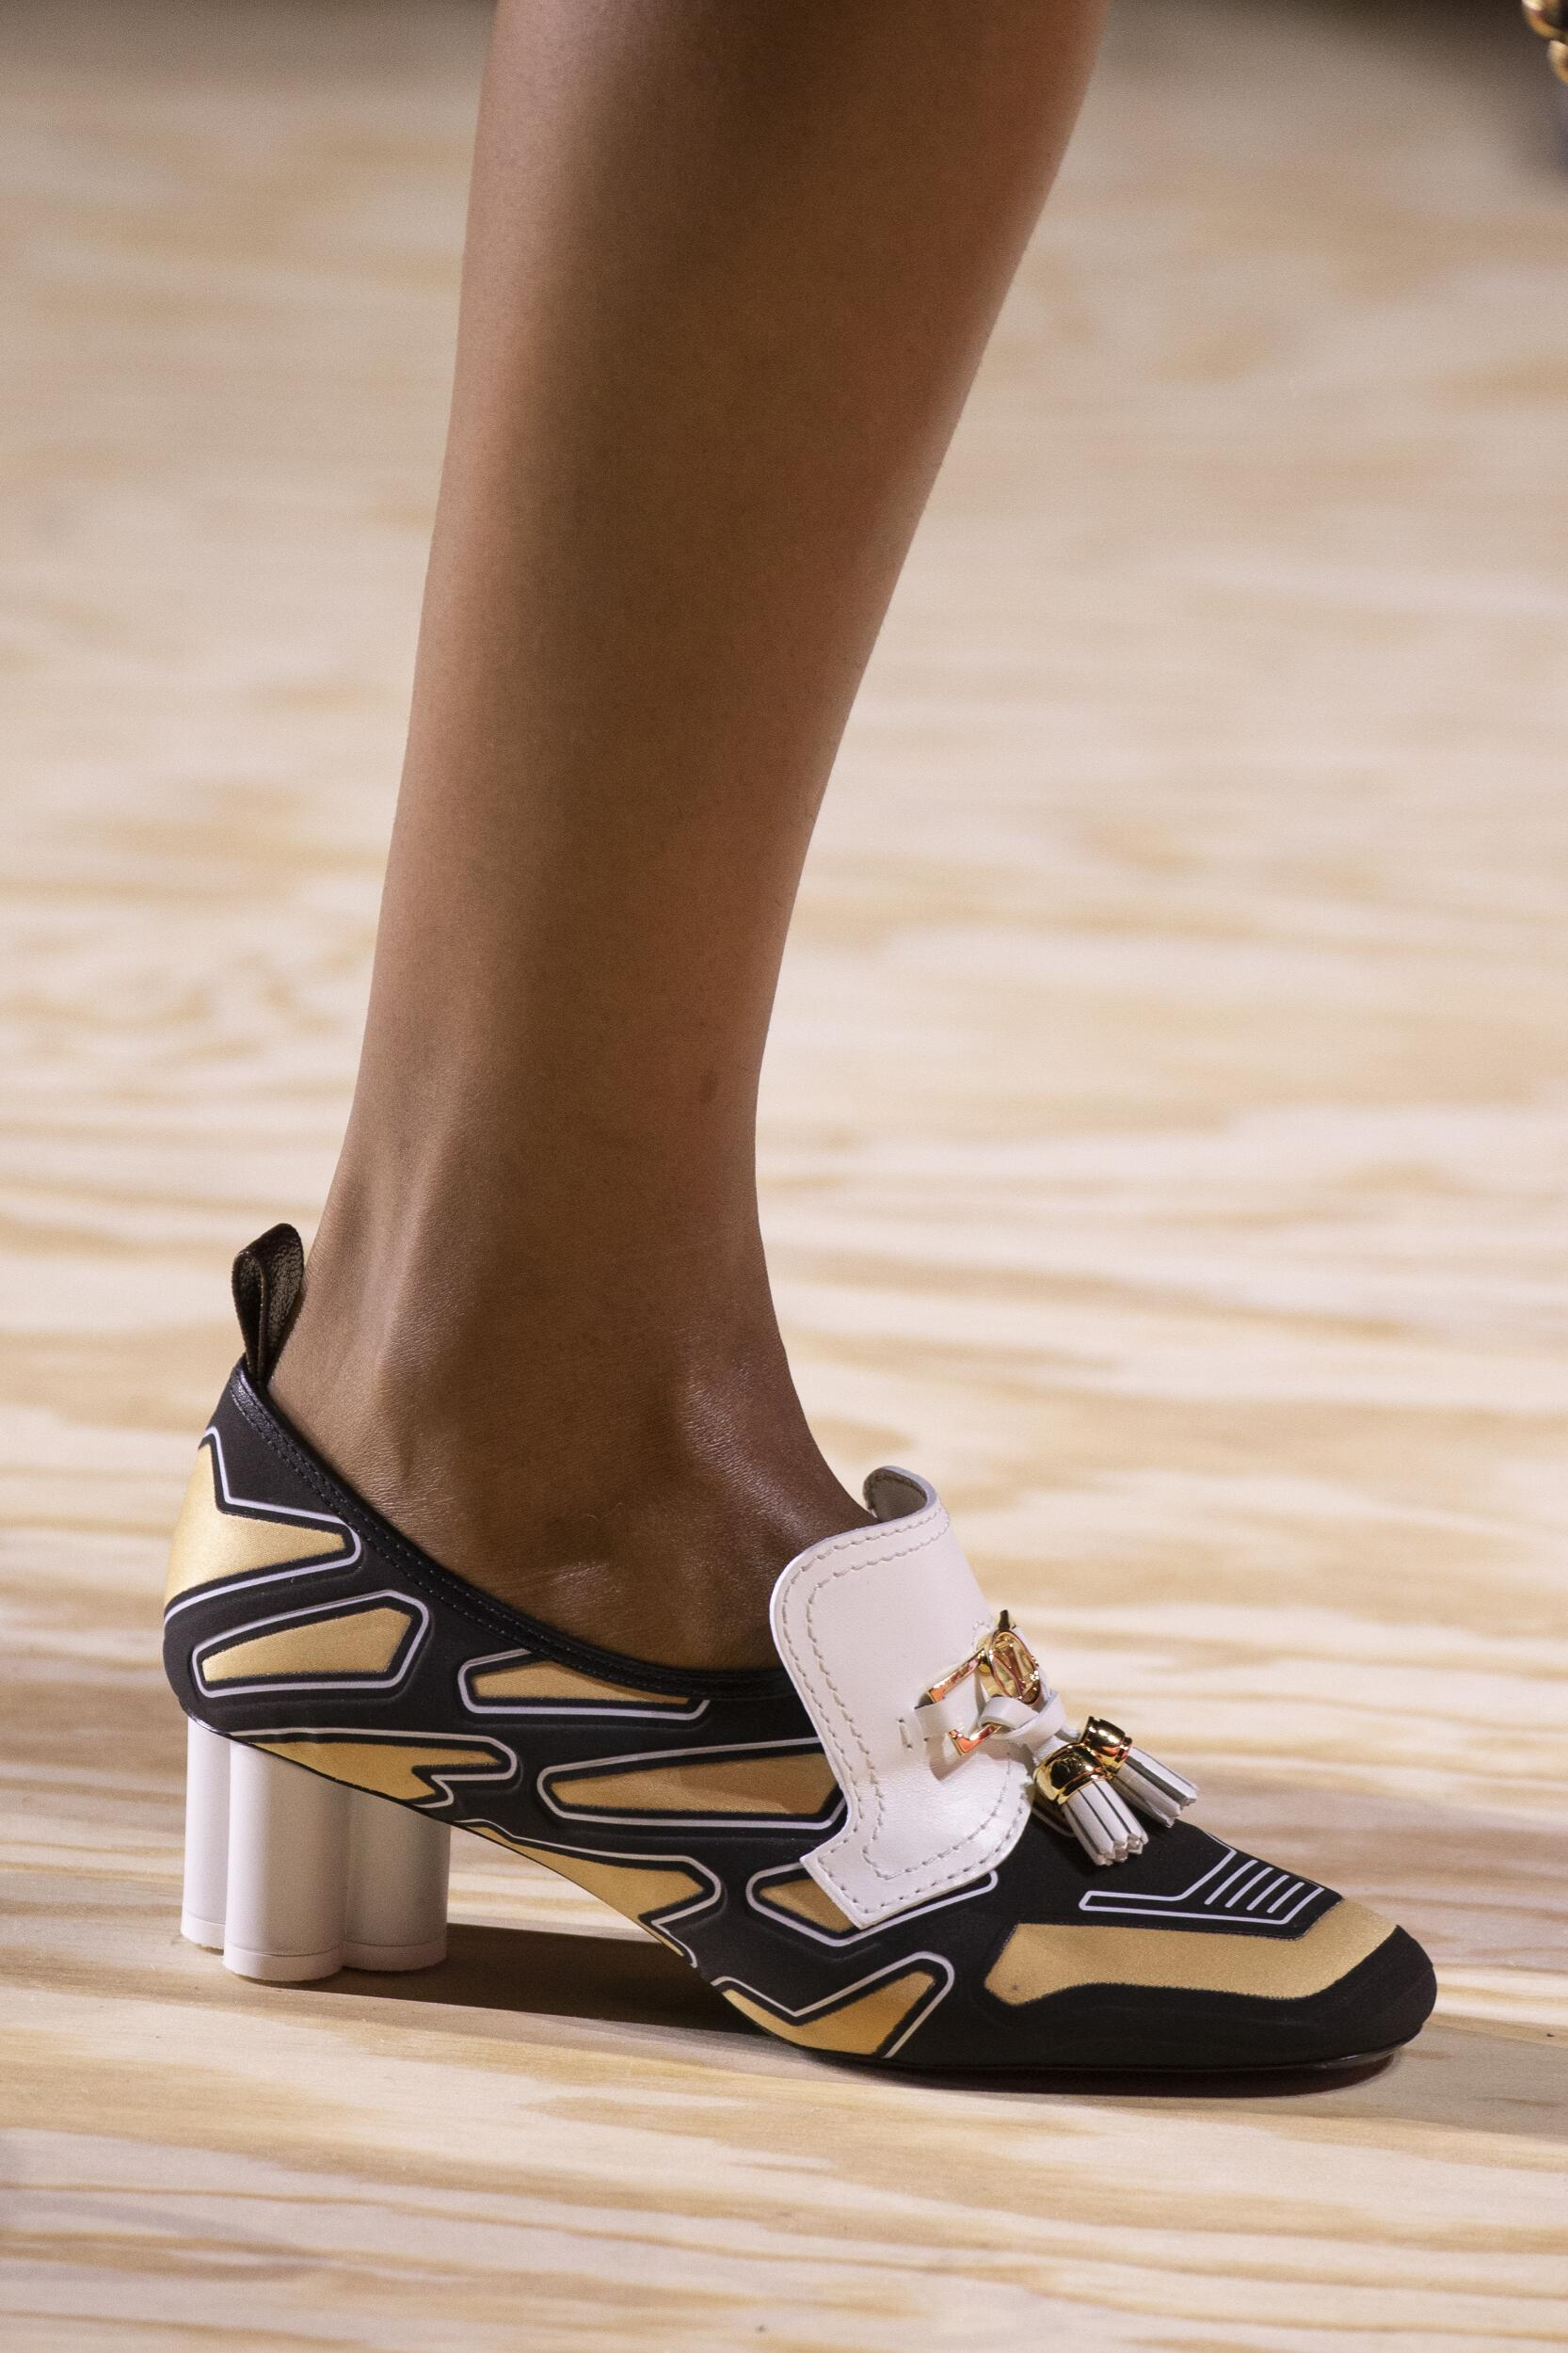 Spring Summer 2020 Woman Shoes Louis Vuitton Collection